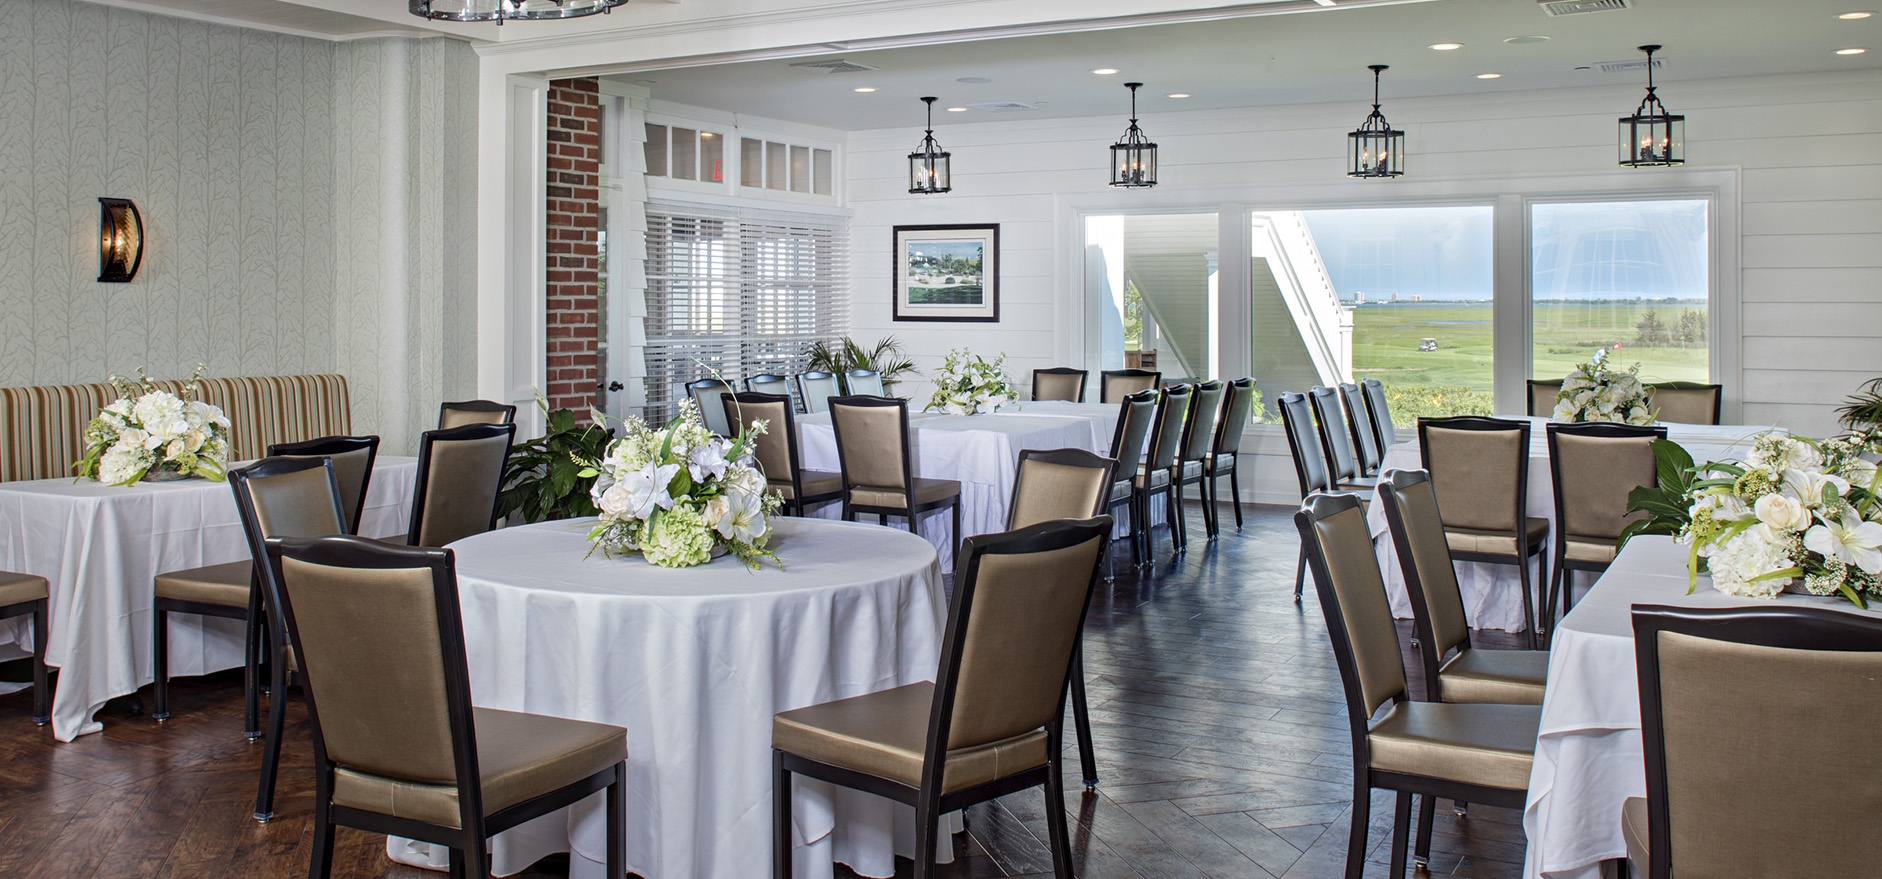 splendid golf outings and wedding receptions there is no more impressive setting as every window provides stunning views of the atlantic city skyline